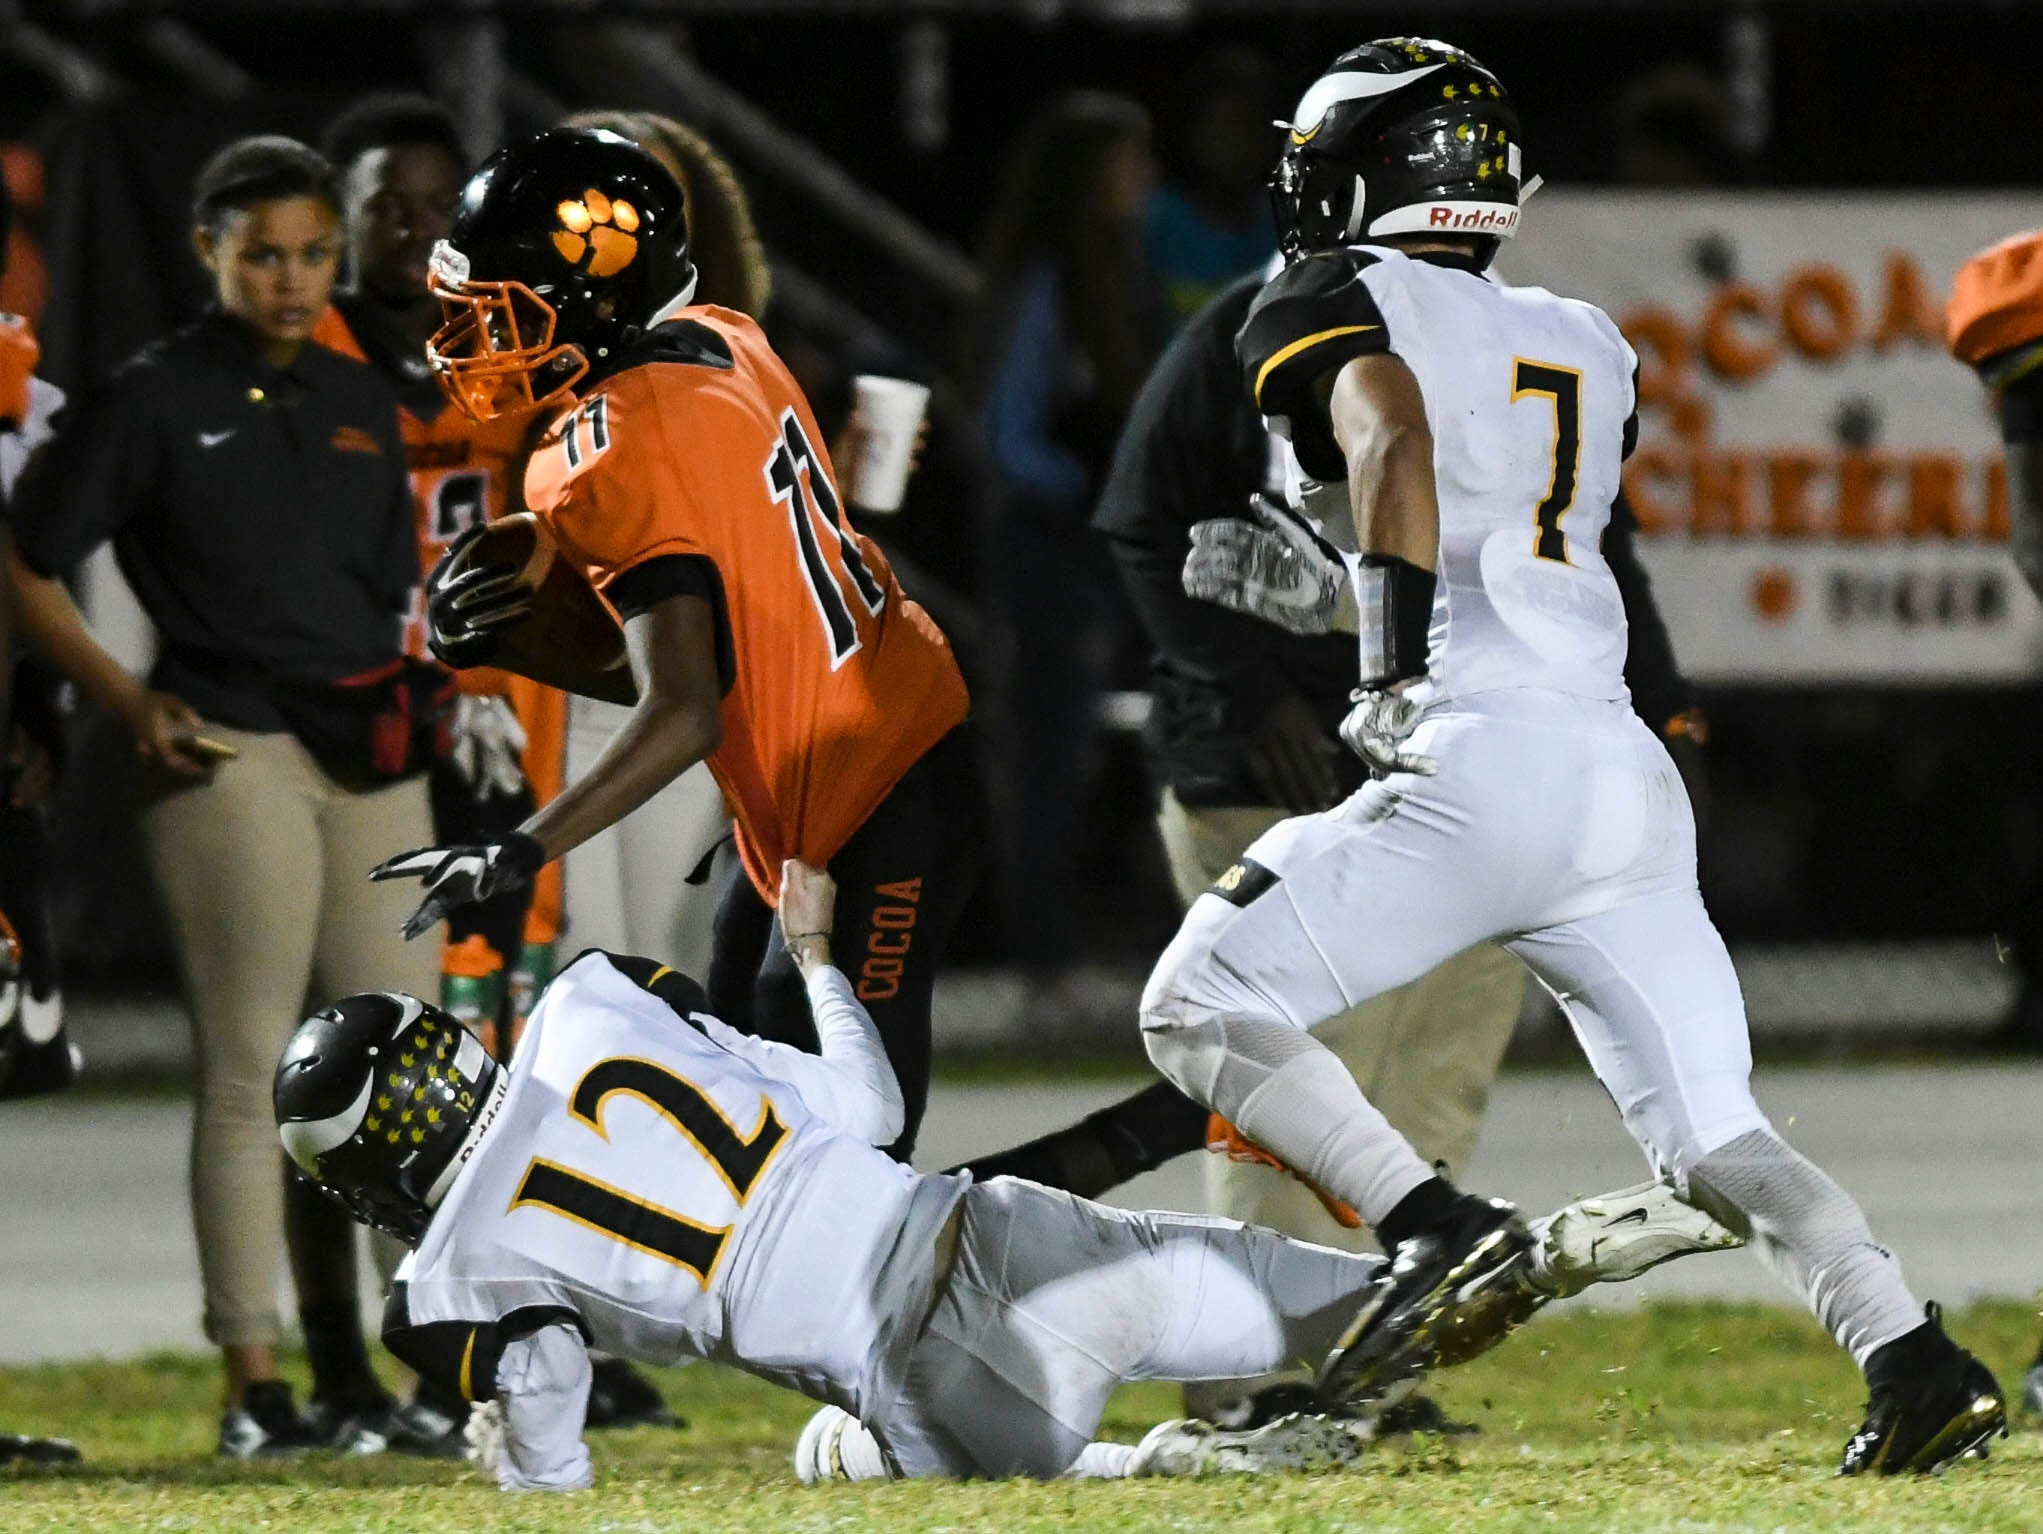 Jamari Williams of Cocoa is brought down by Blake Williams (12) and Dominic Febels of Bishop Verot during Friday's game.